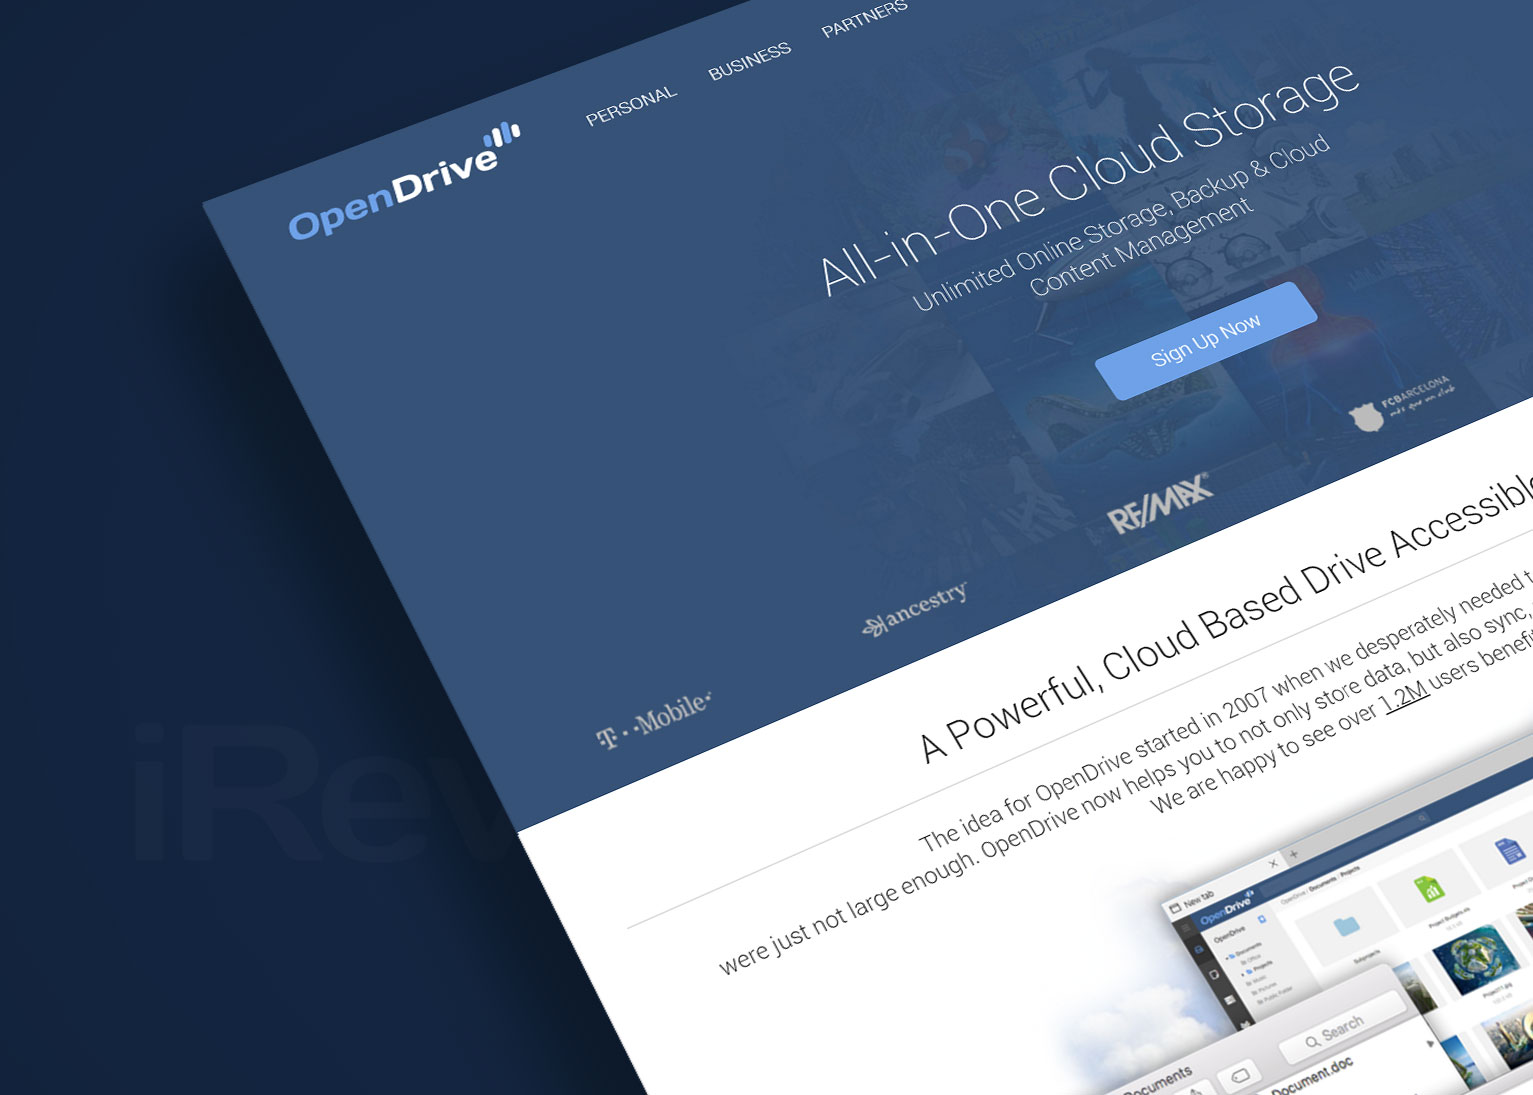 opendrive cloud storage